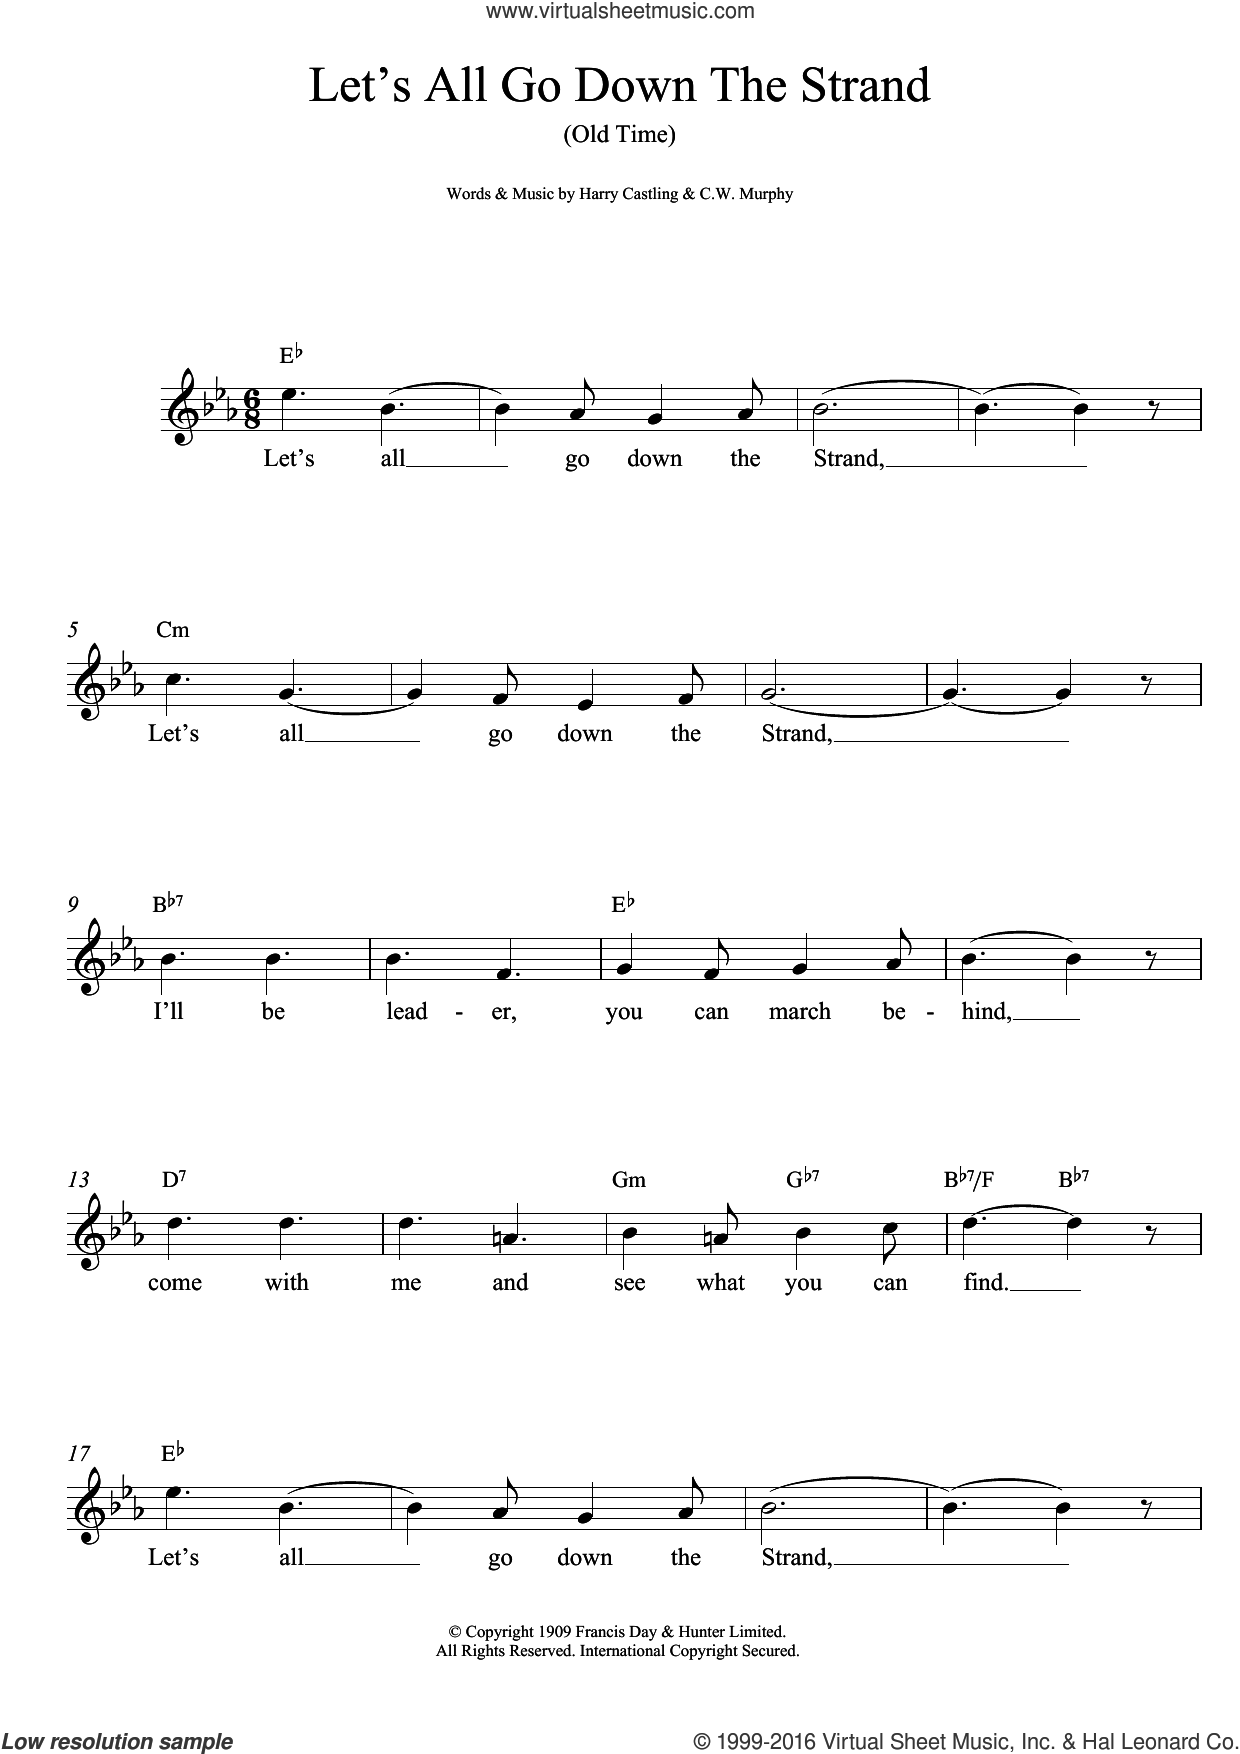 Let's All Go Down The Strand sheet music for voice and other instruments (fake book) by Harry Castling and C.W. Murphy, intermediate skill level